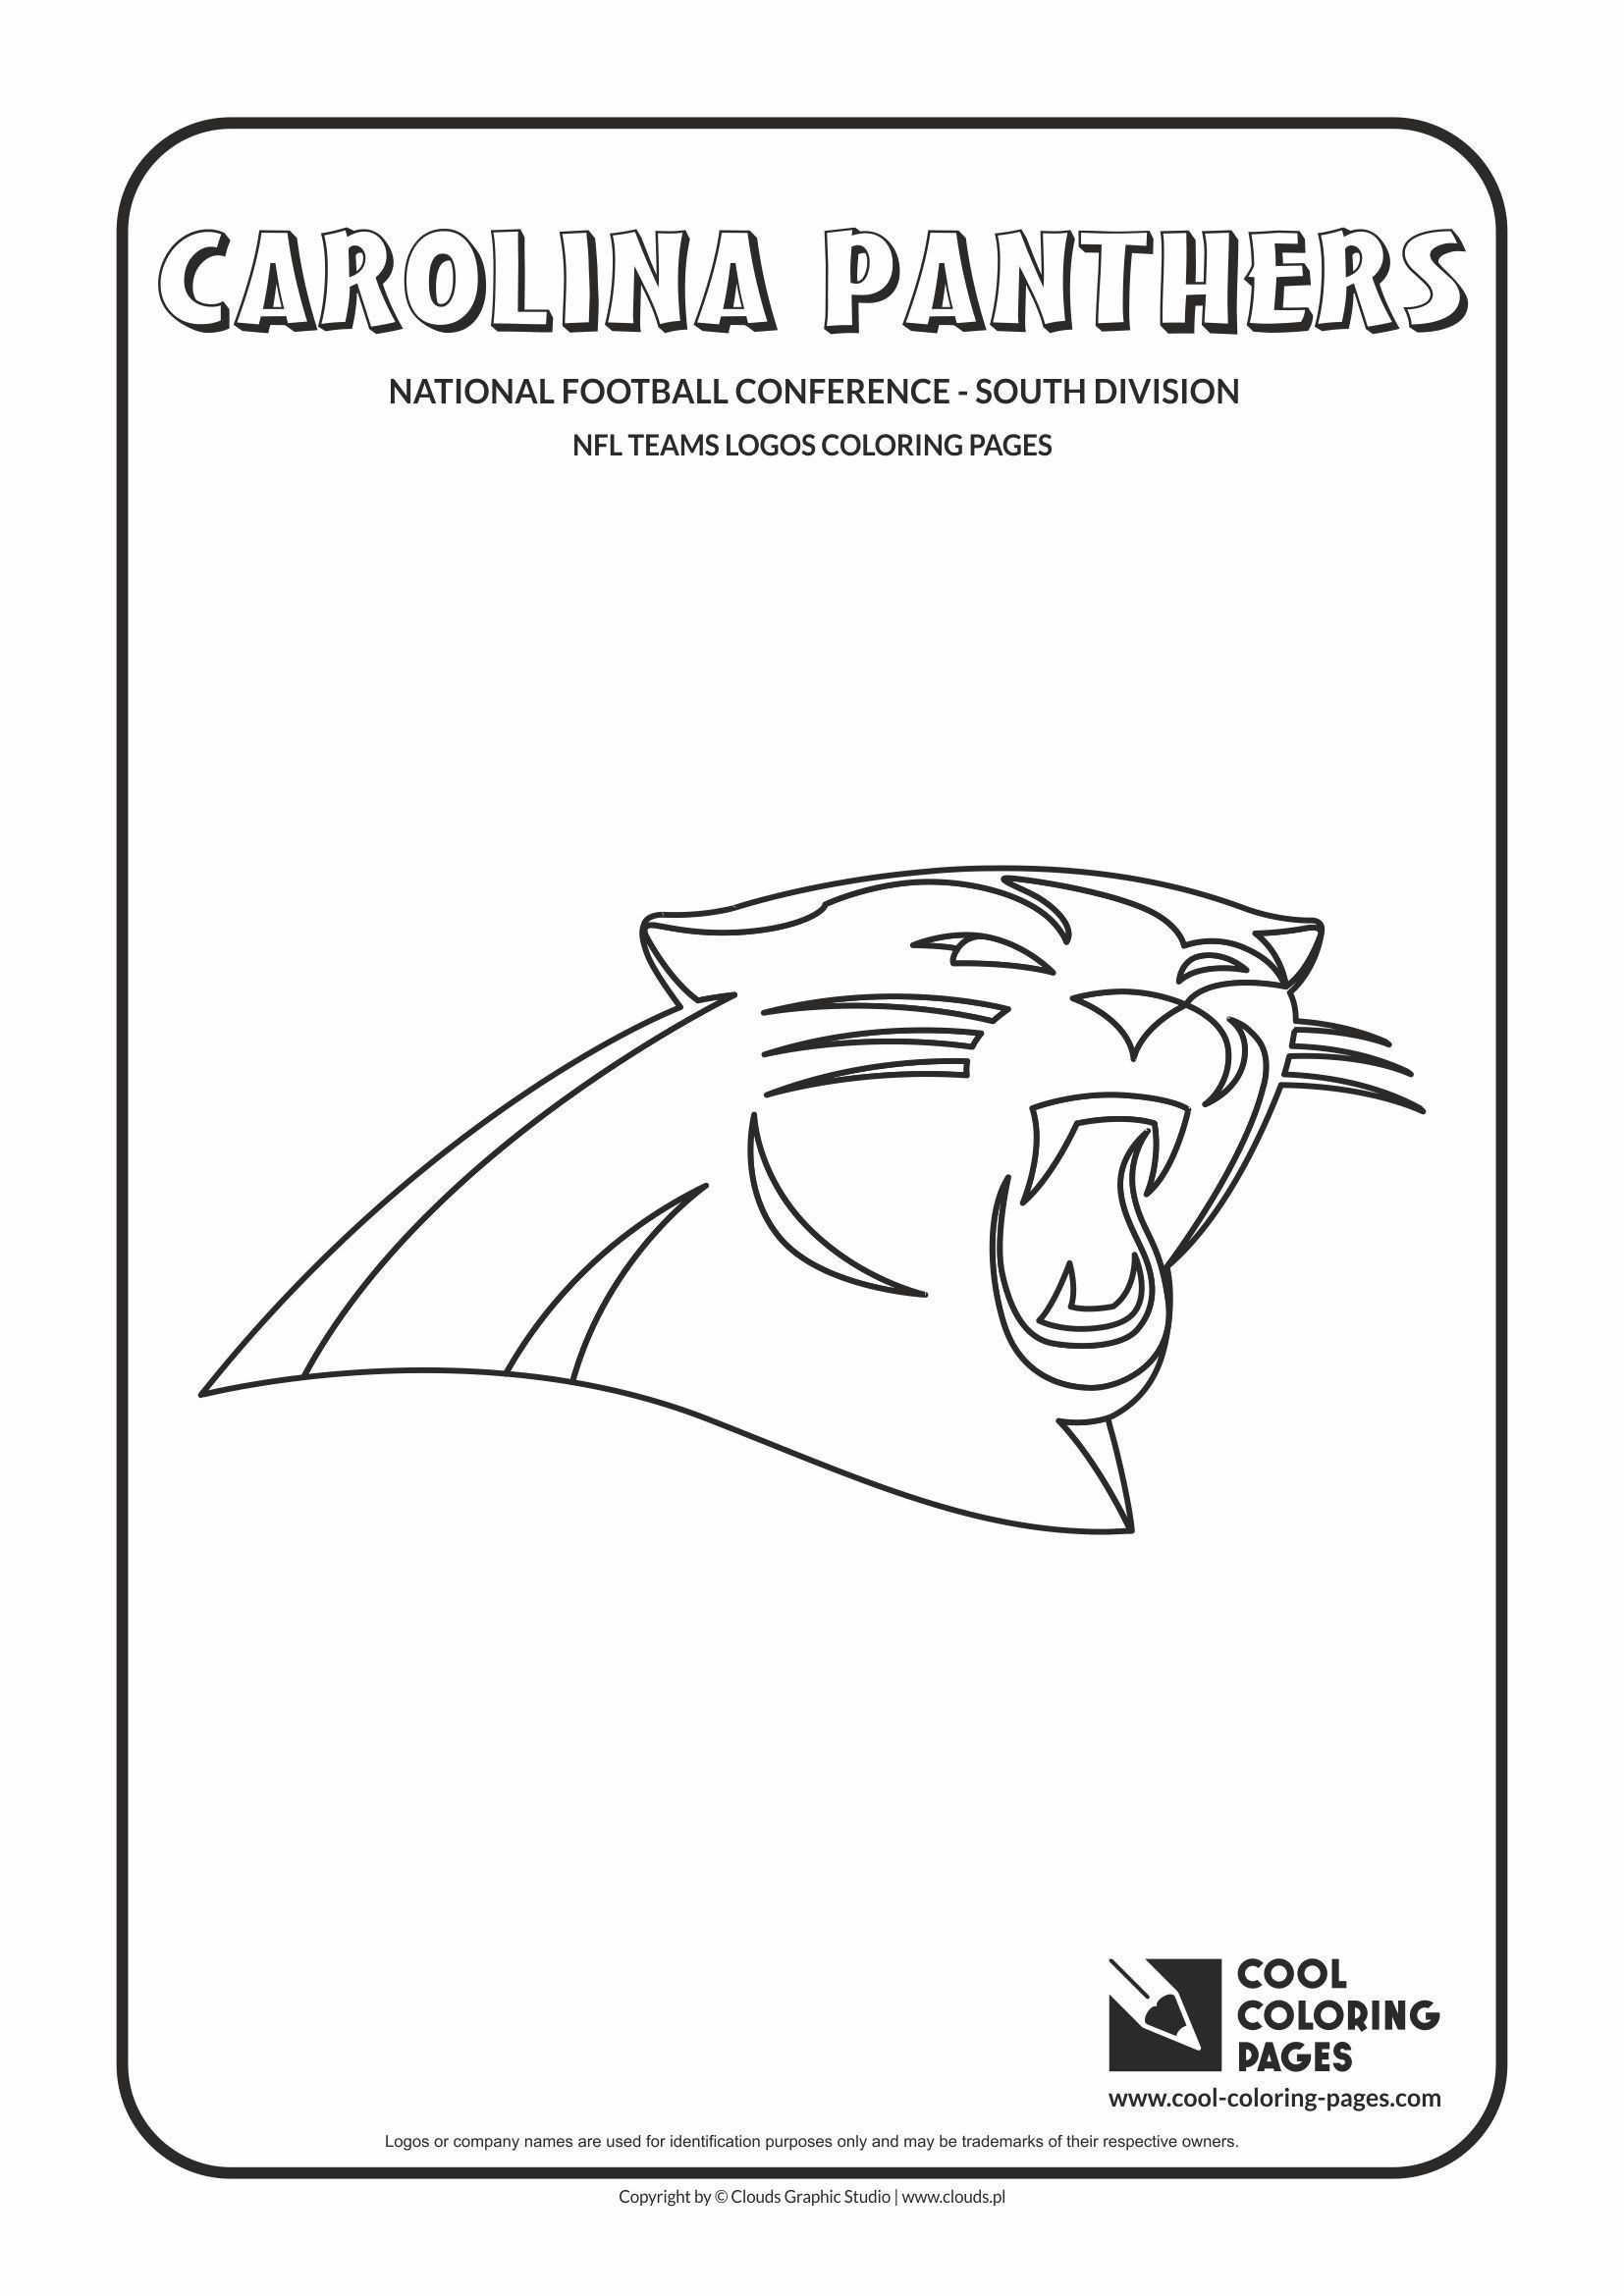 Nfl Logos Coloring Pages Coloring Pages Nfl In 2020 Nfl Teams Logos Cool Coloring Pages Nfl Logo